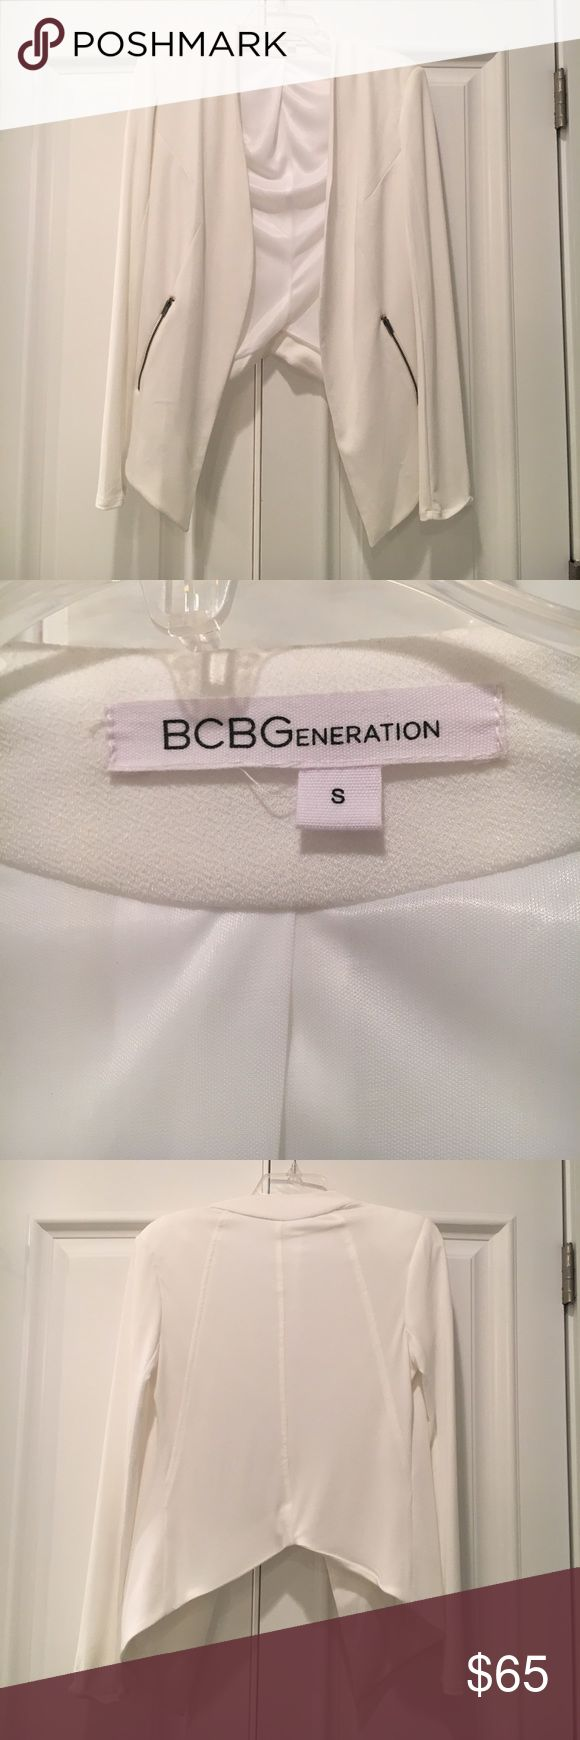 BCBGeneration winter white blazer BCBGeneration winter white jacket, size small with side zippered pockets. Perfect condition- no stains, tears, snags.... Worn once. BCBGeneration Jackets & Coats Blazers